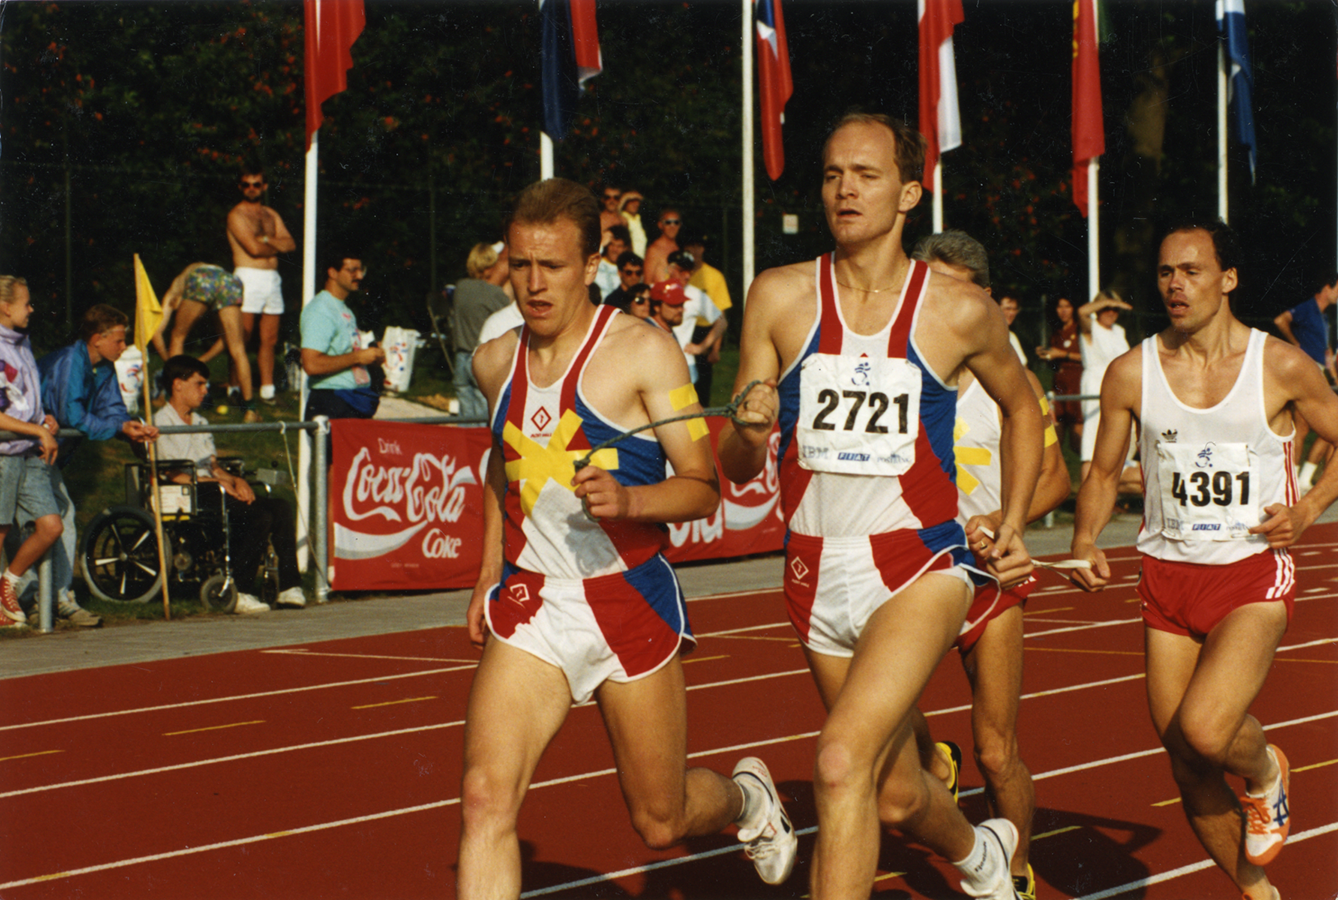 Bob Matthews winning the 5000m at the World Championships in Assen